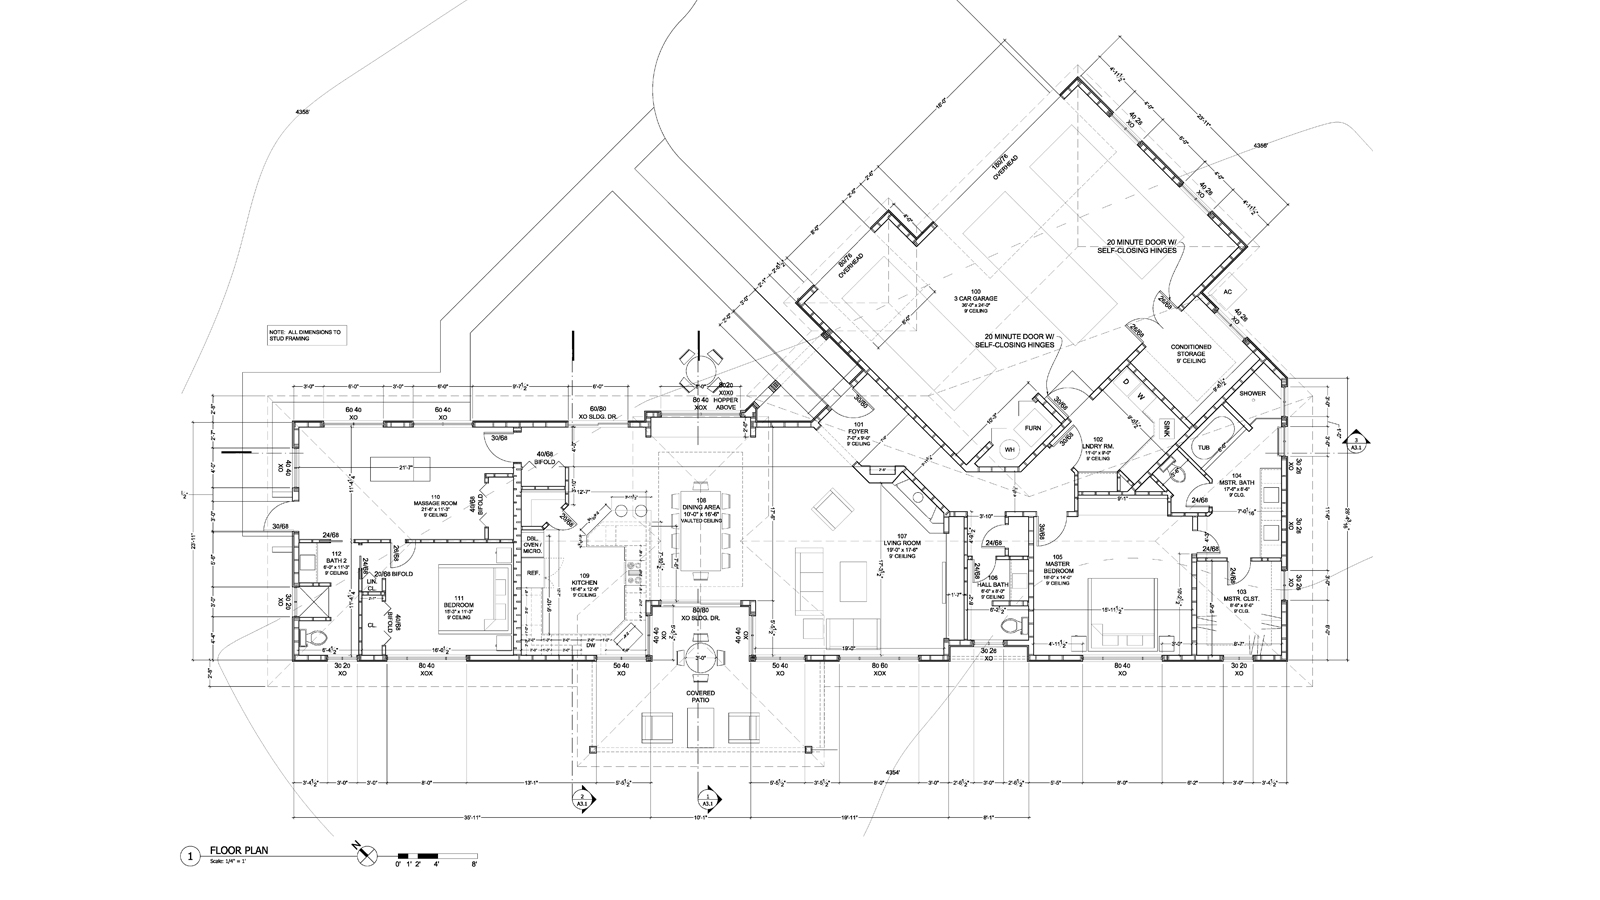 ARROYO PINON_A1.3 - FLOOR PLAN_2.17.15.jpg